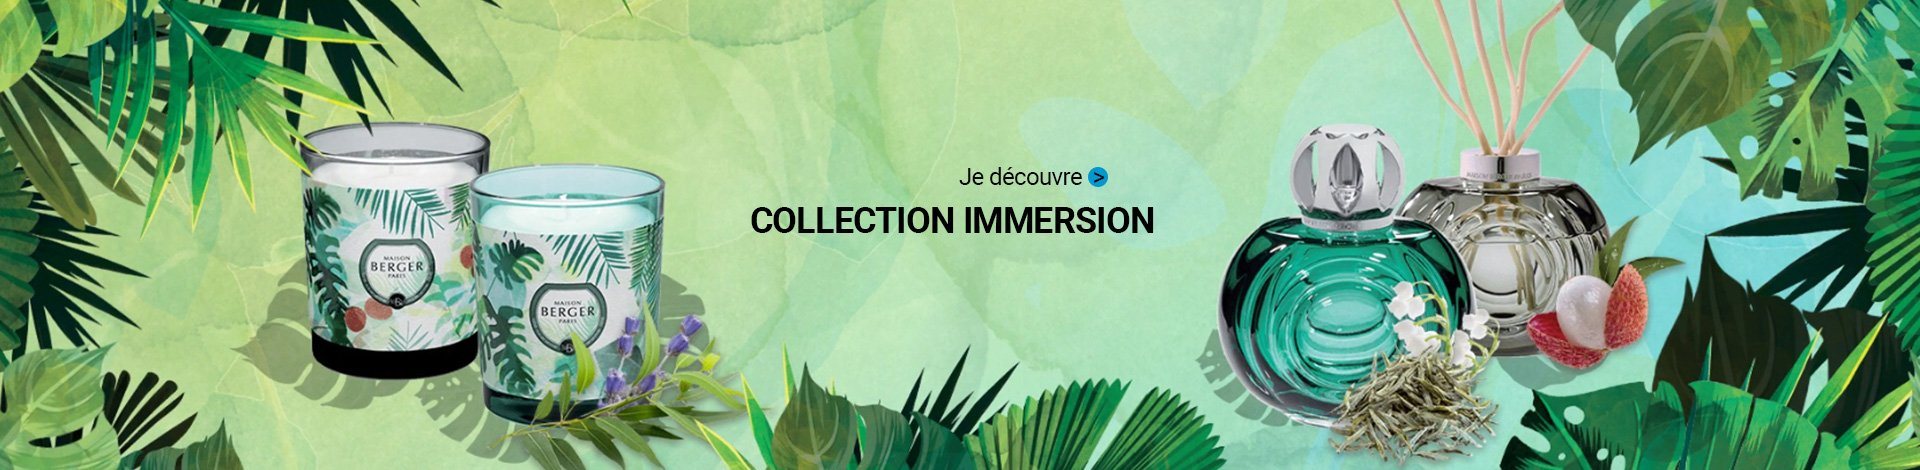 Maison Berger : Collection Immersion